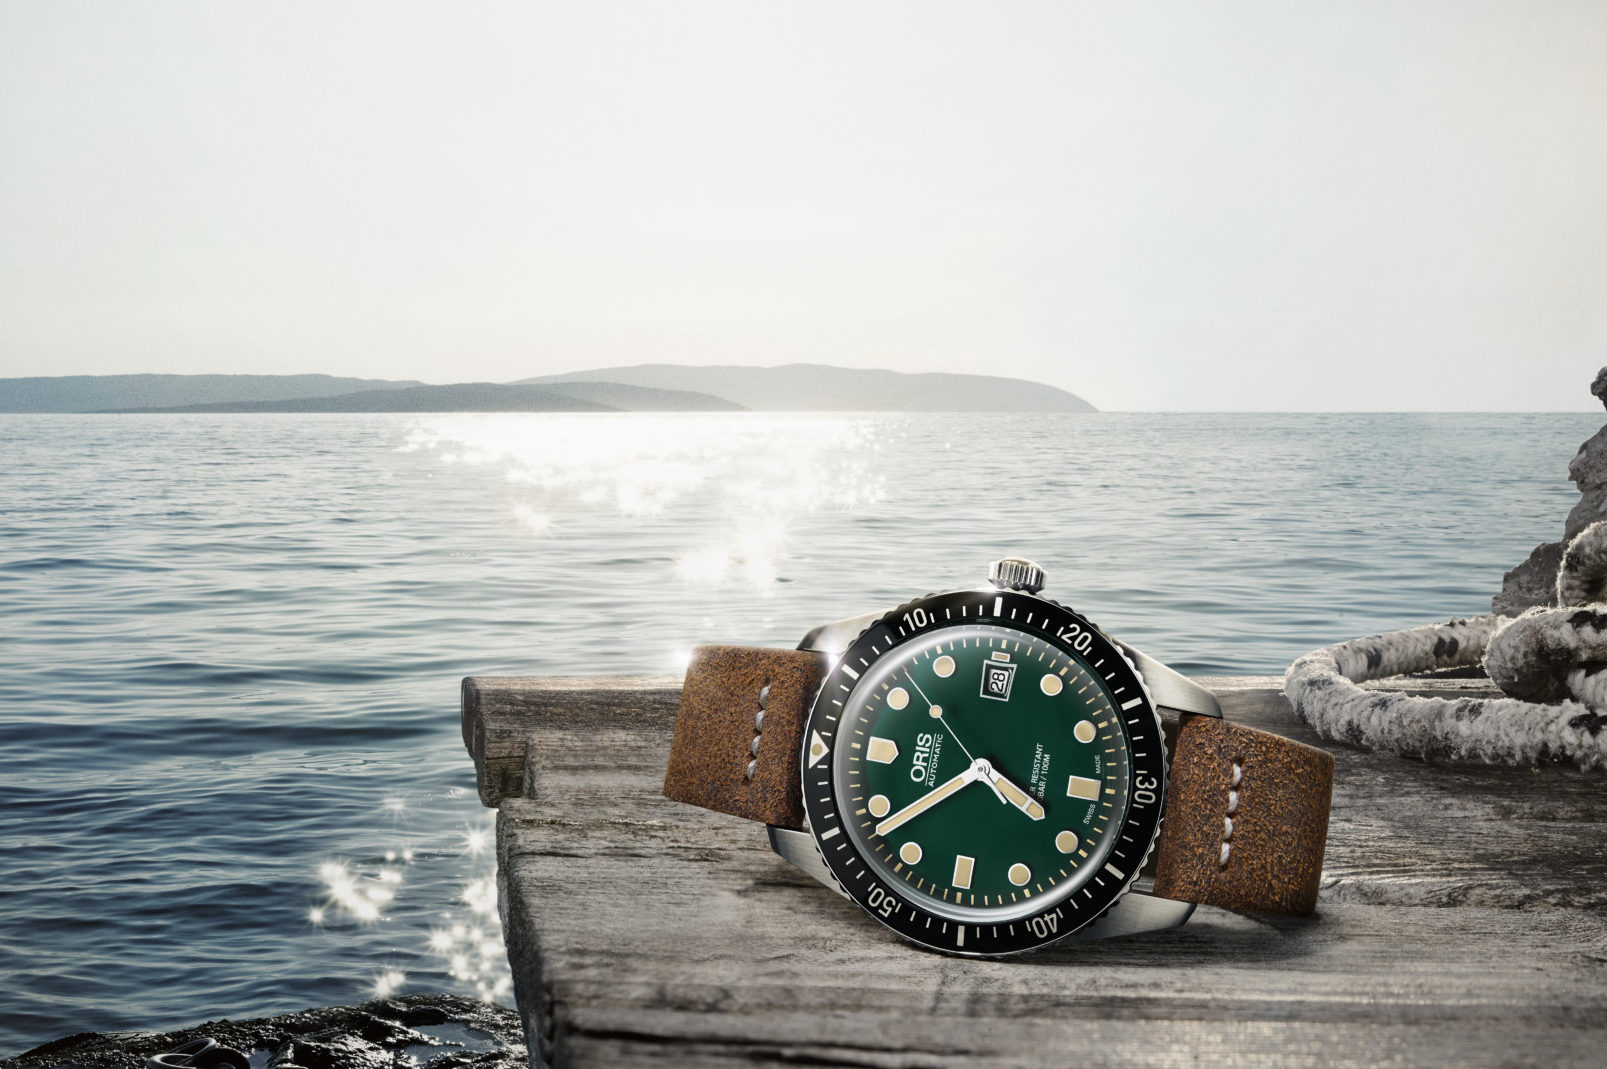 01 733 7720 4057-07 5 21 02 – Oris Divers Sixty-Five